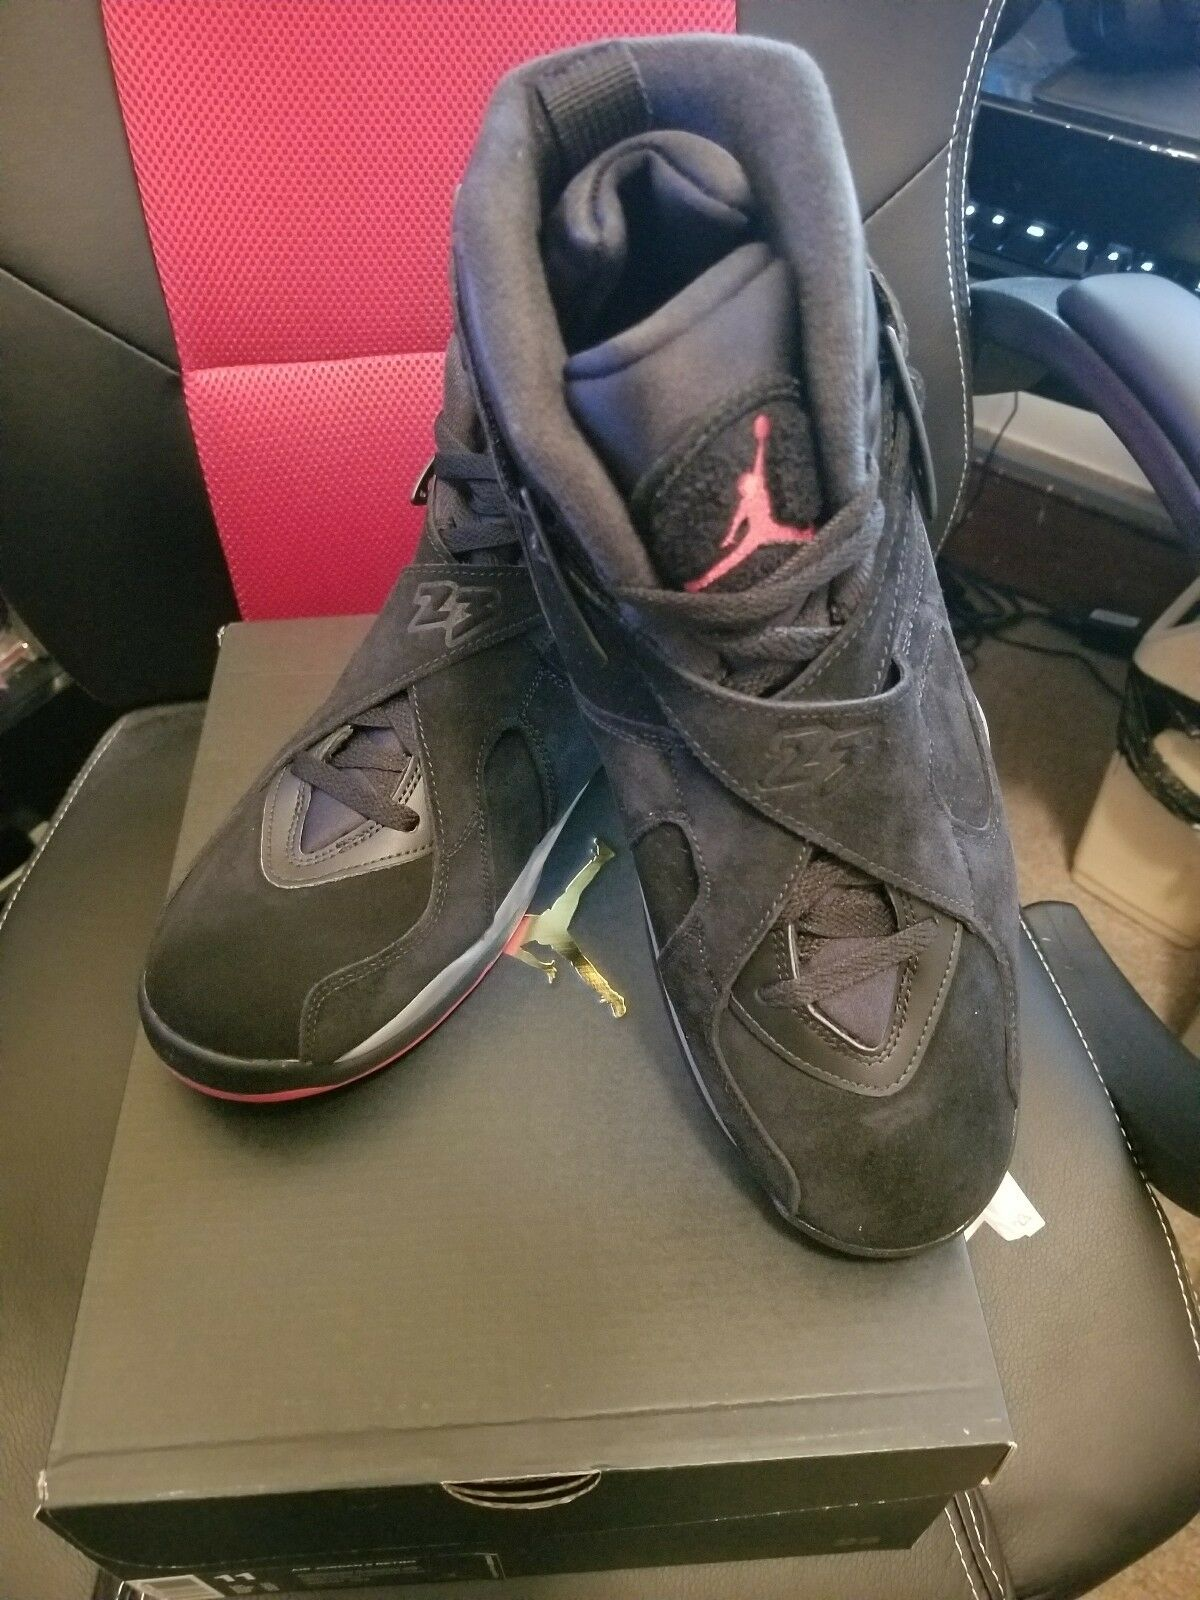 brand new 0f4e5 3d3e6 SHIP NOW Nike Air Jordan 8 VIII Retro Cement 11 11 11 Black Red Grey 305381